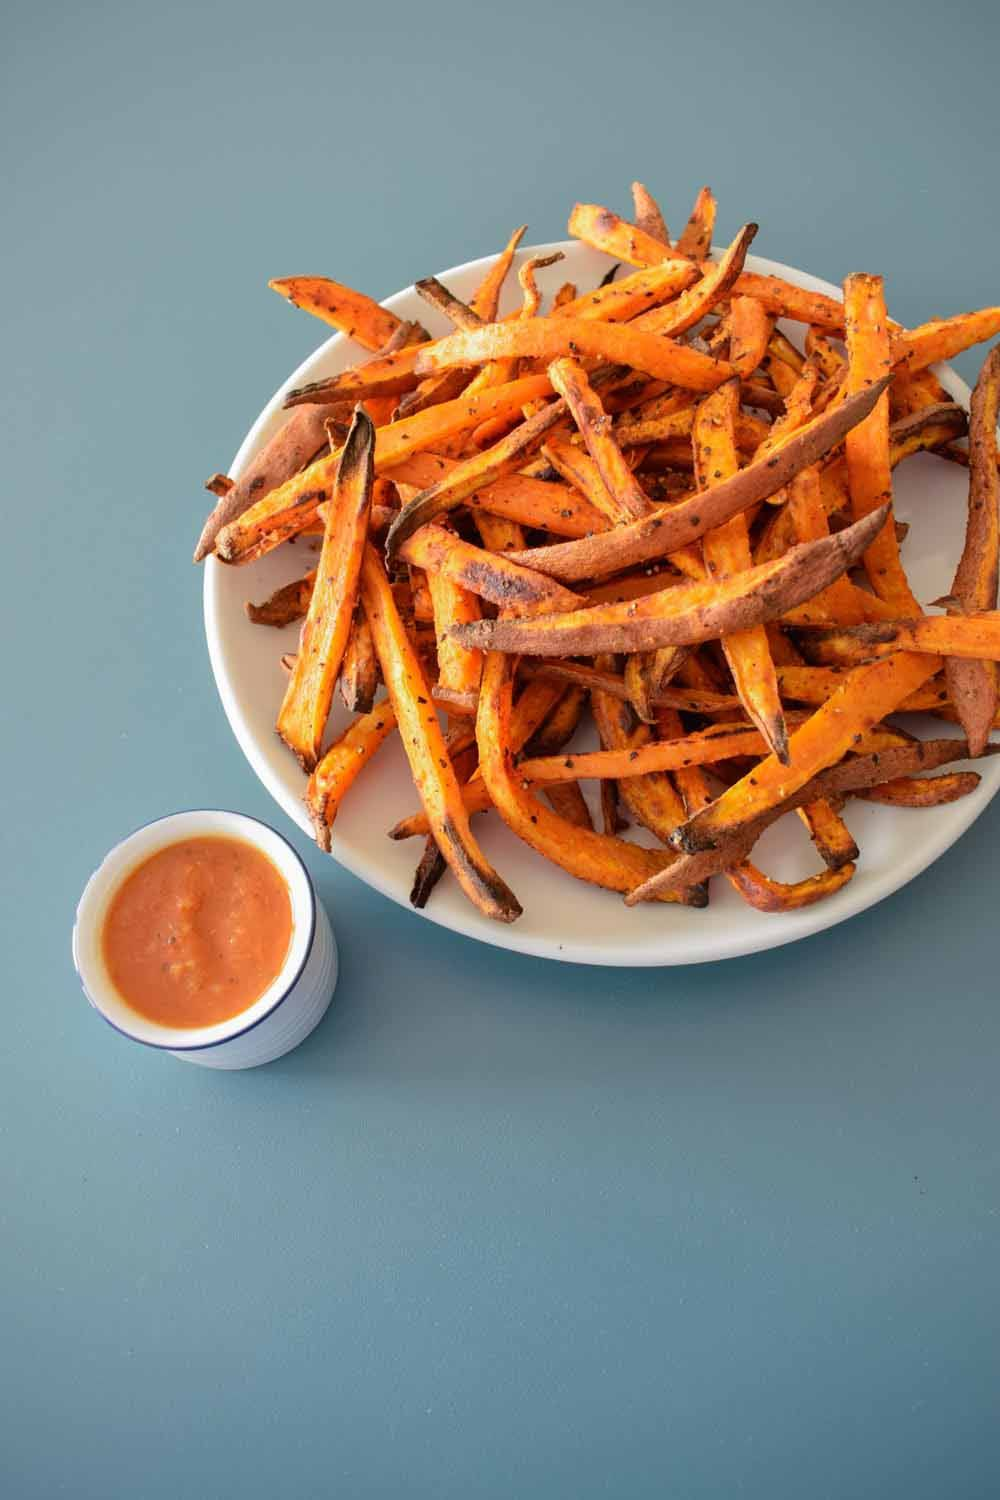 These Spicy Sweet Potato Fries Are Oven Baked Making Them The